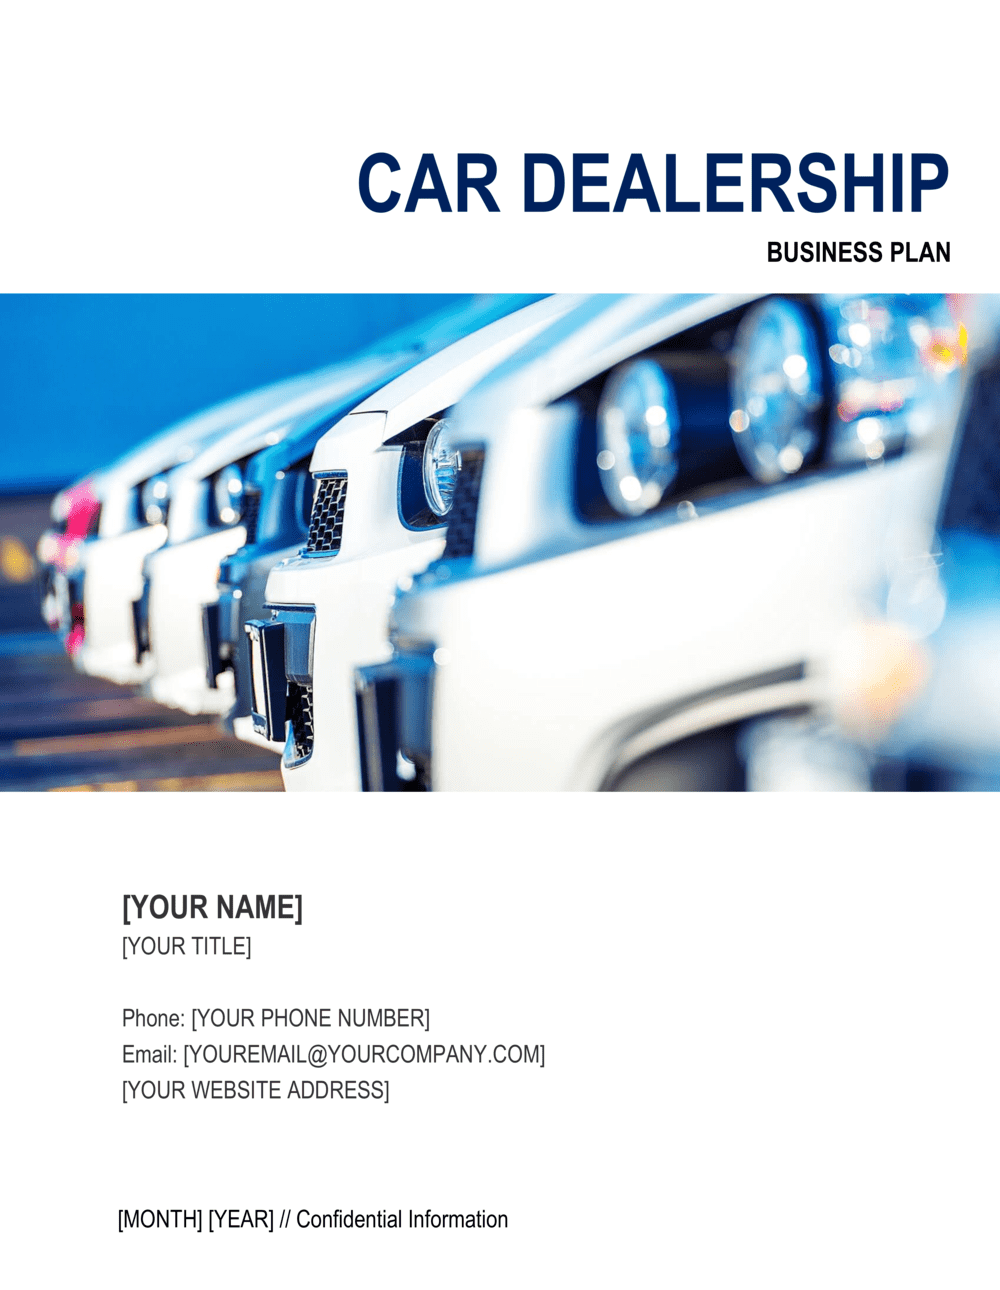 Business-in-a-Box's Car Dealership Business Plan Template